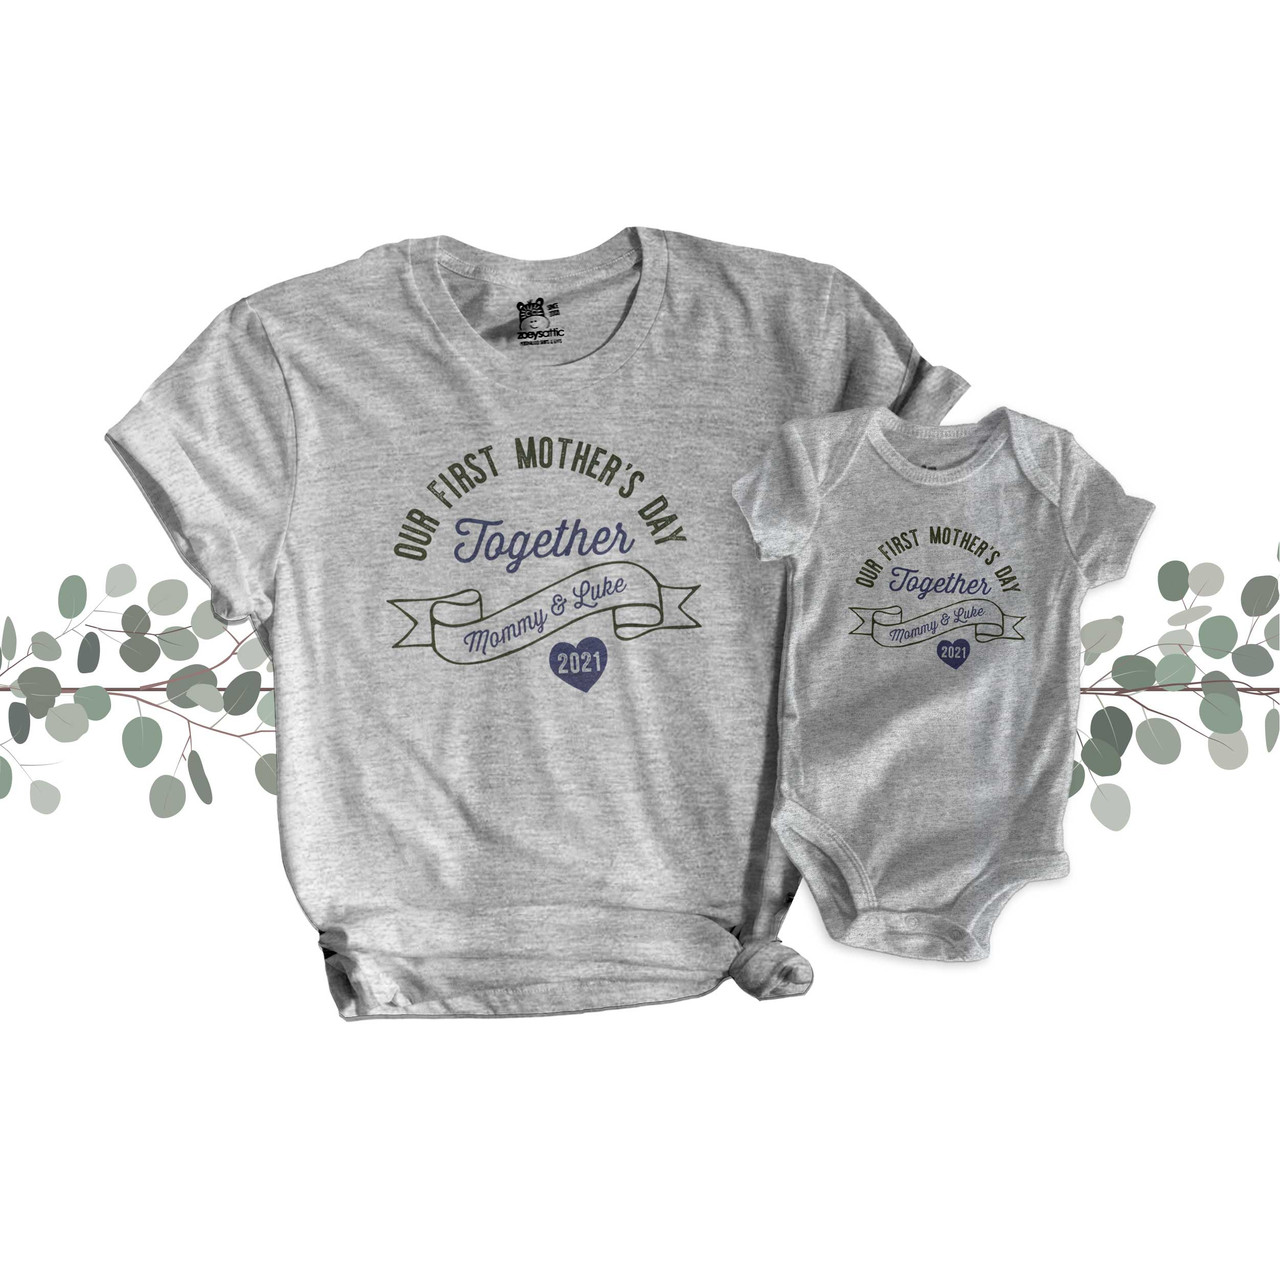 Our First Mother/'s Day 2020 Custom Name Personal Kids Adult T-shirts NEW